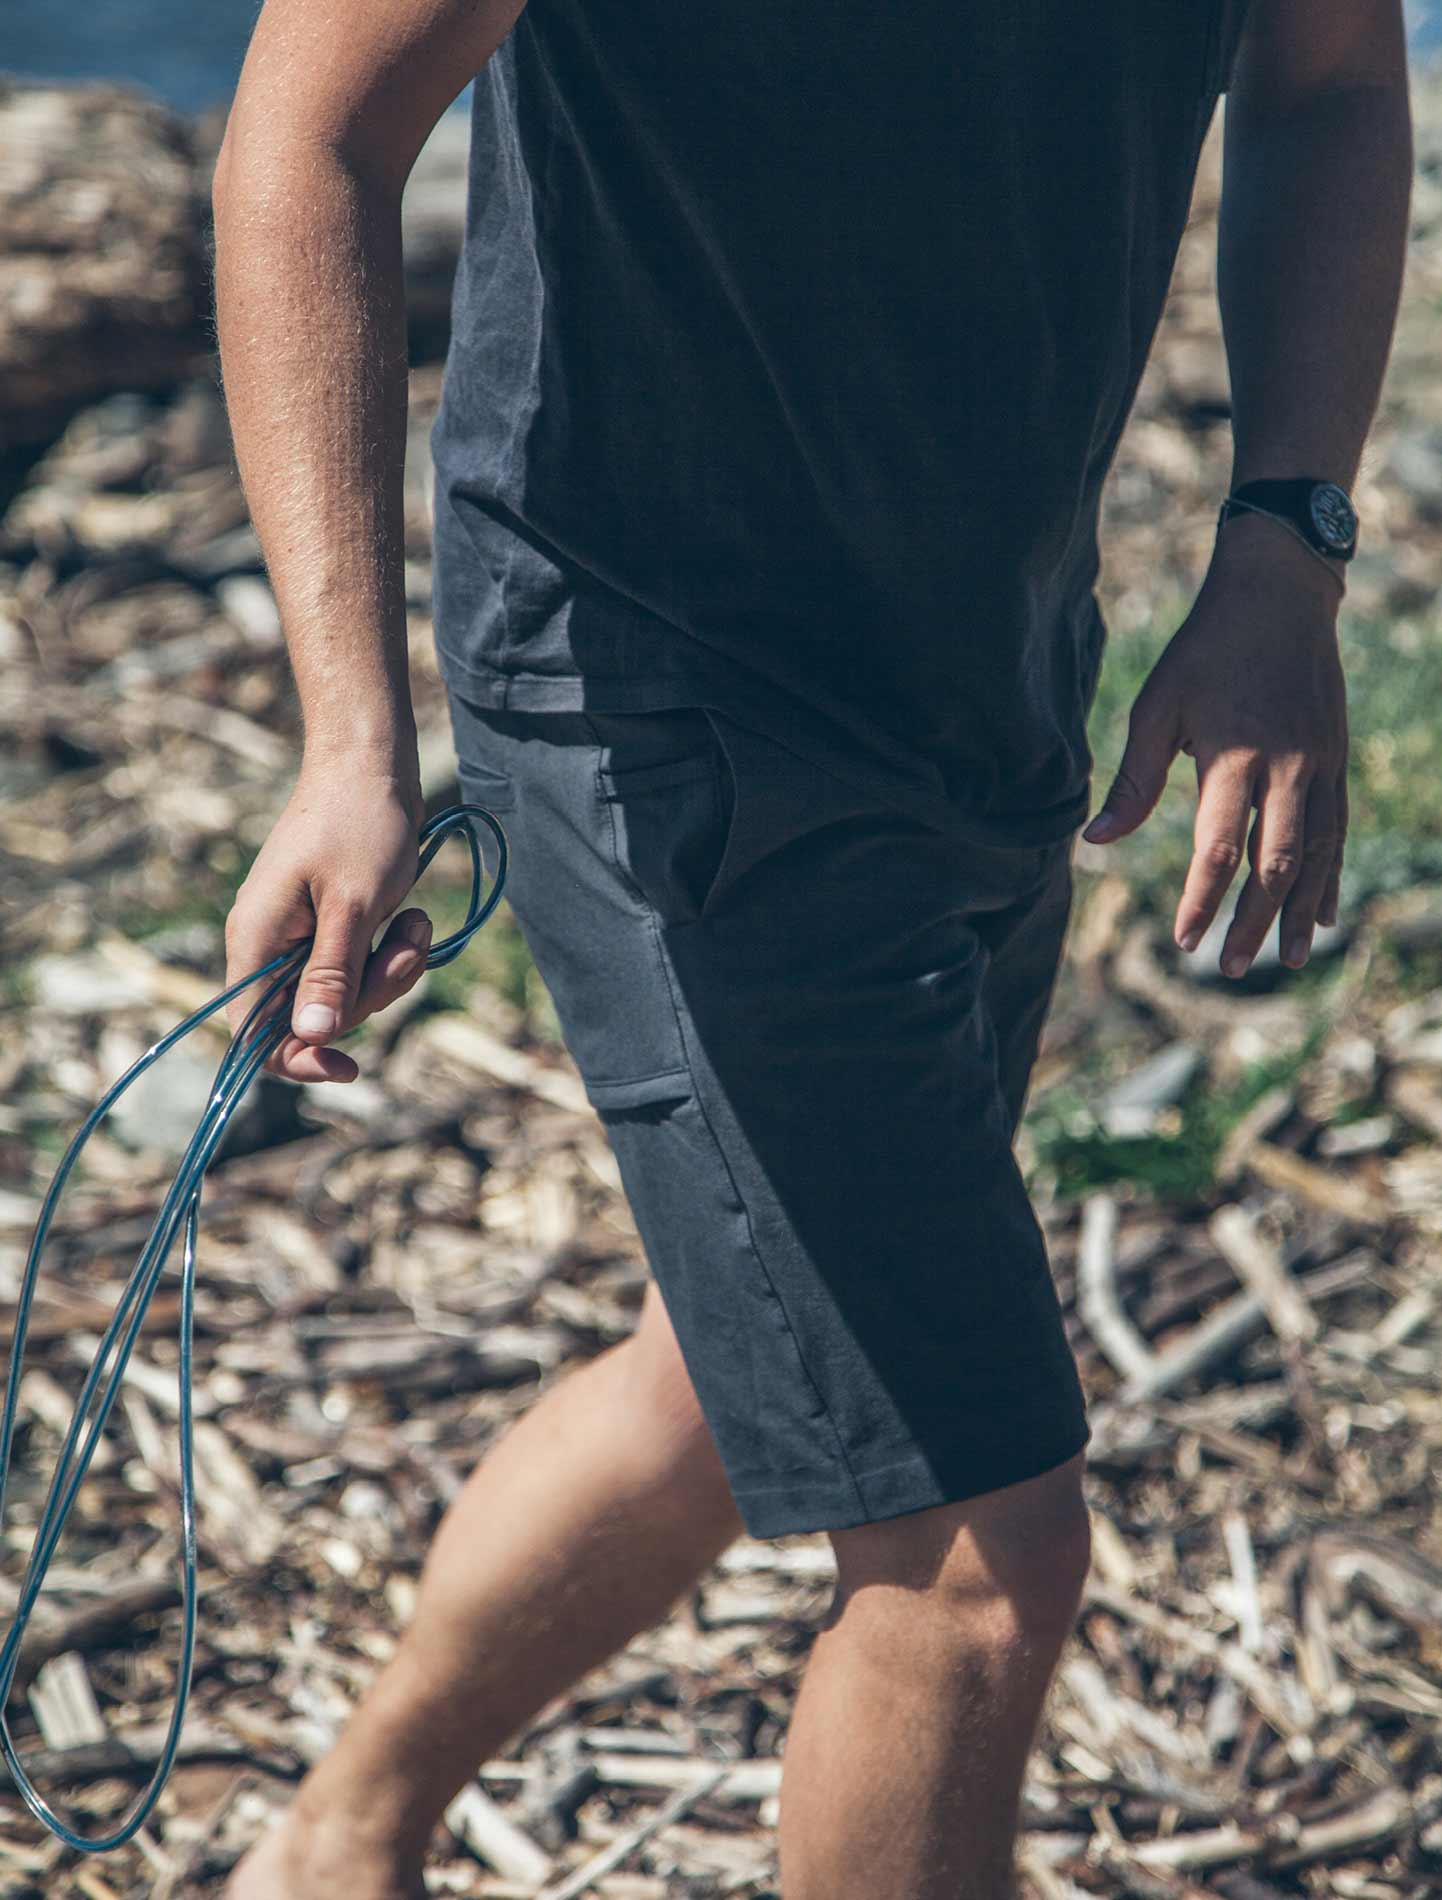 Wearing shorts in the brush.